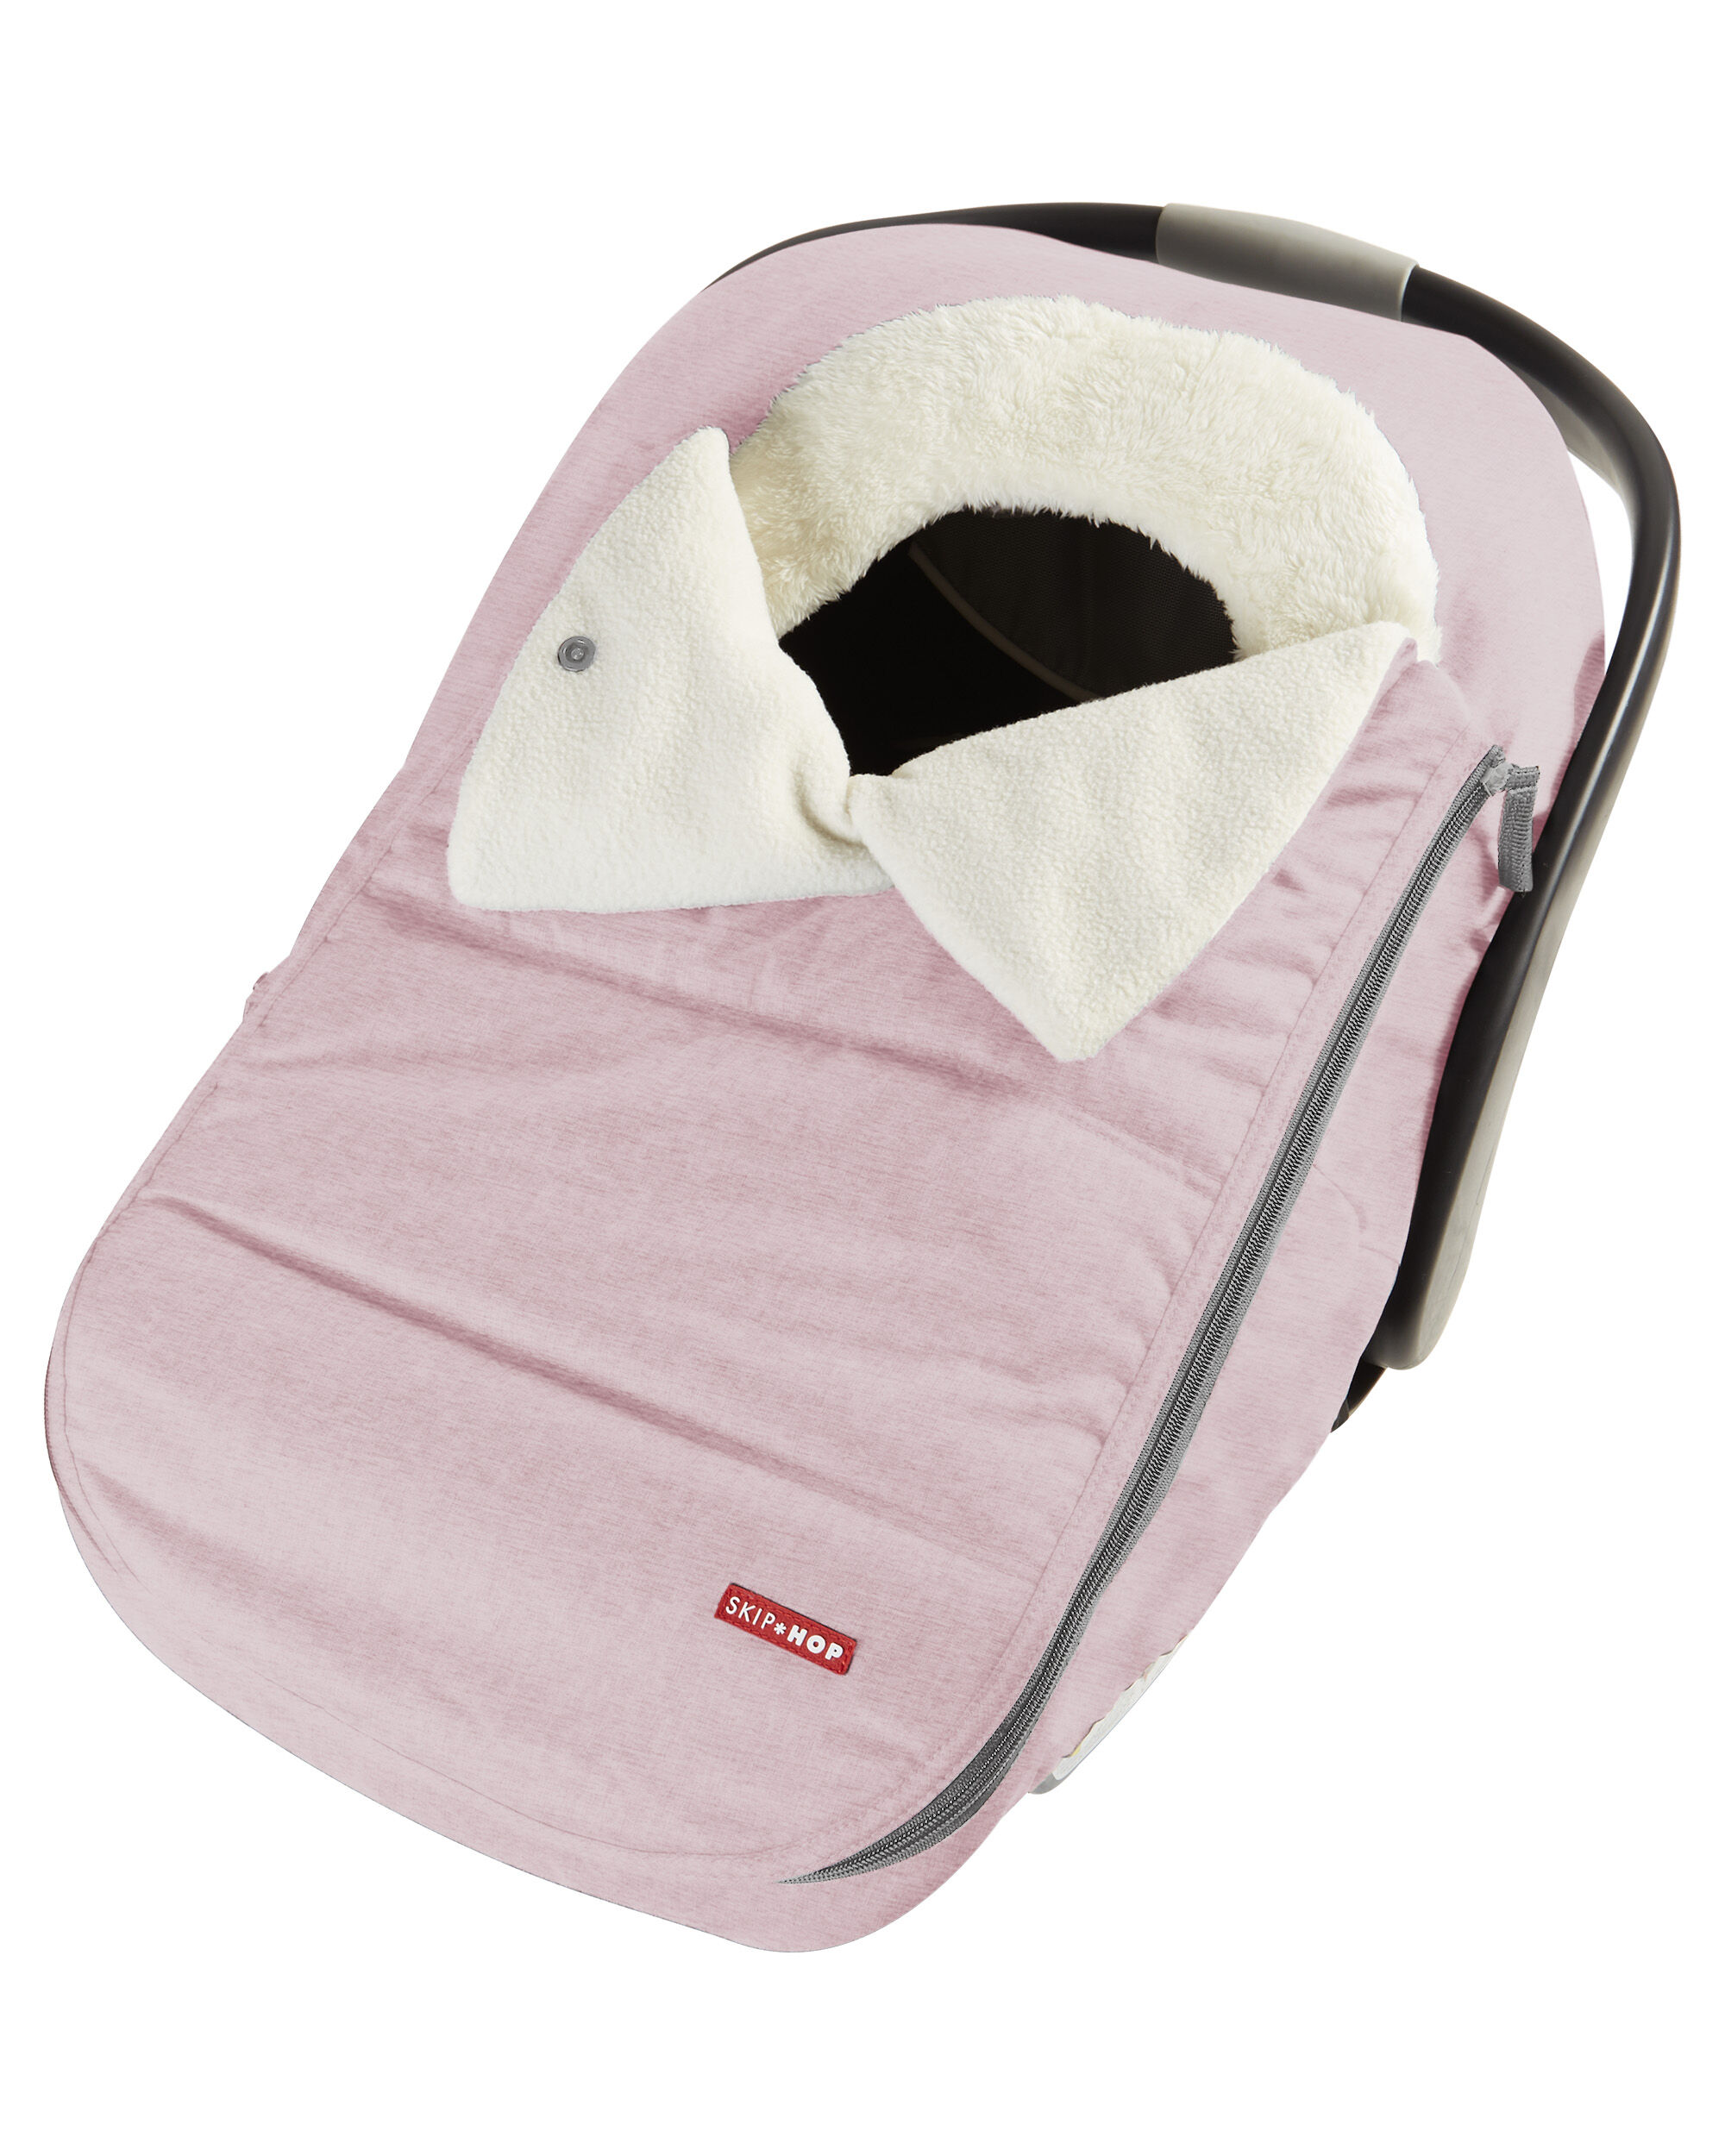 Carters Stroll & Go Car Seat Cover - Pink Heather